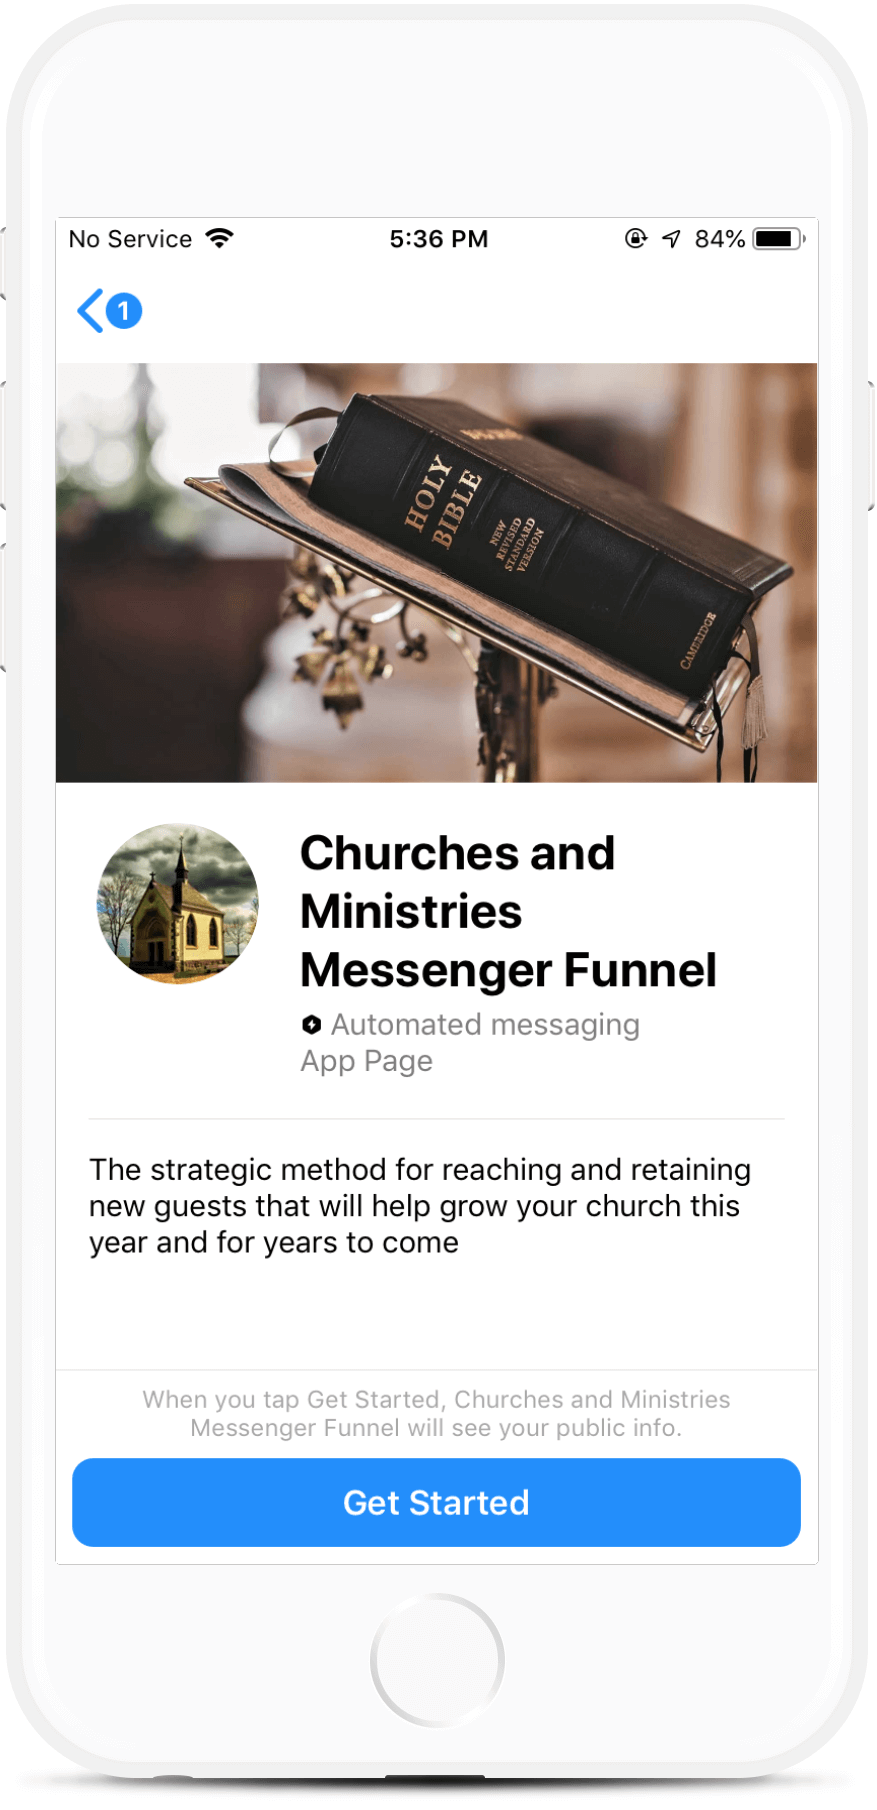 Churches and Ministries Messenger Funnel